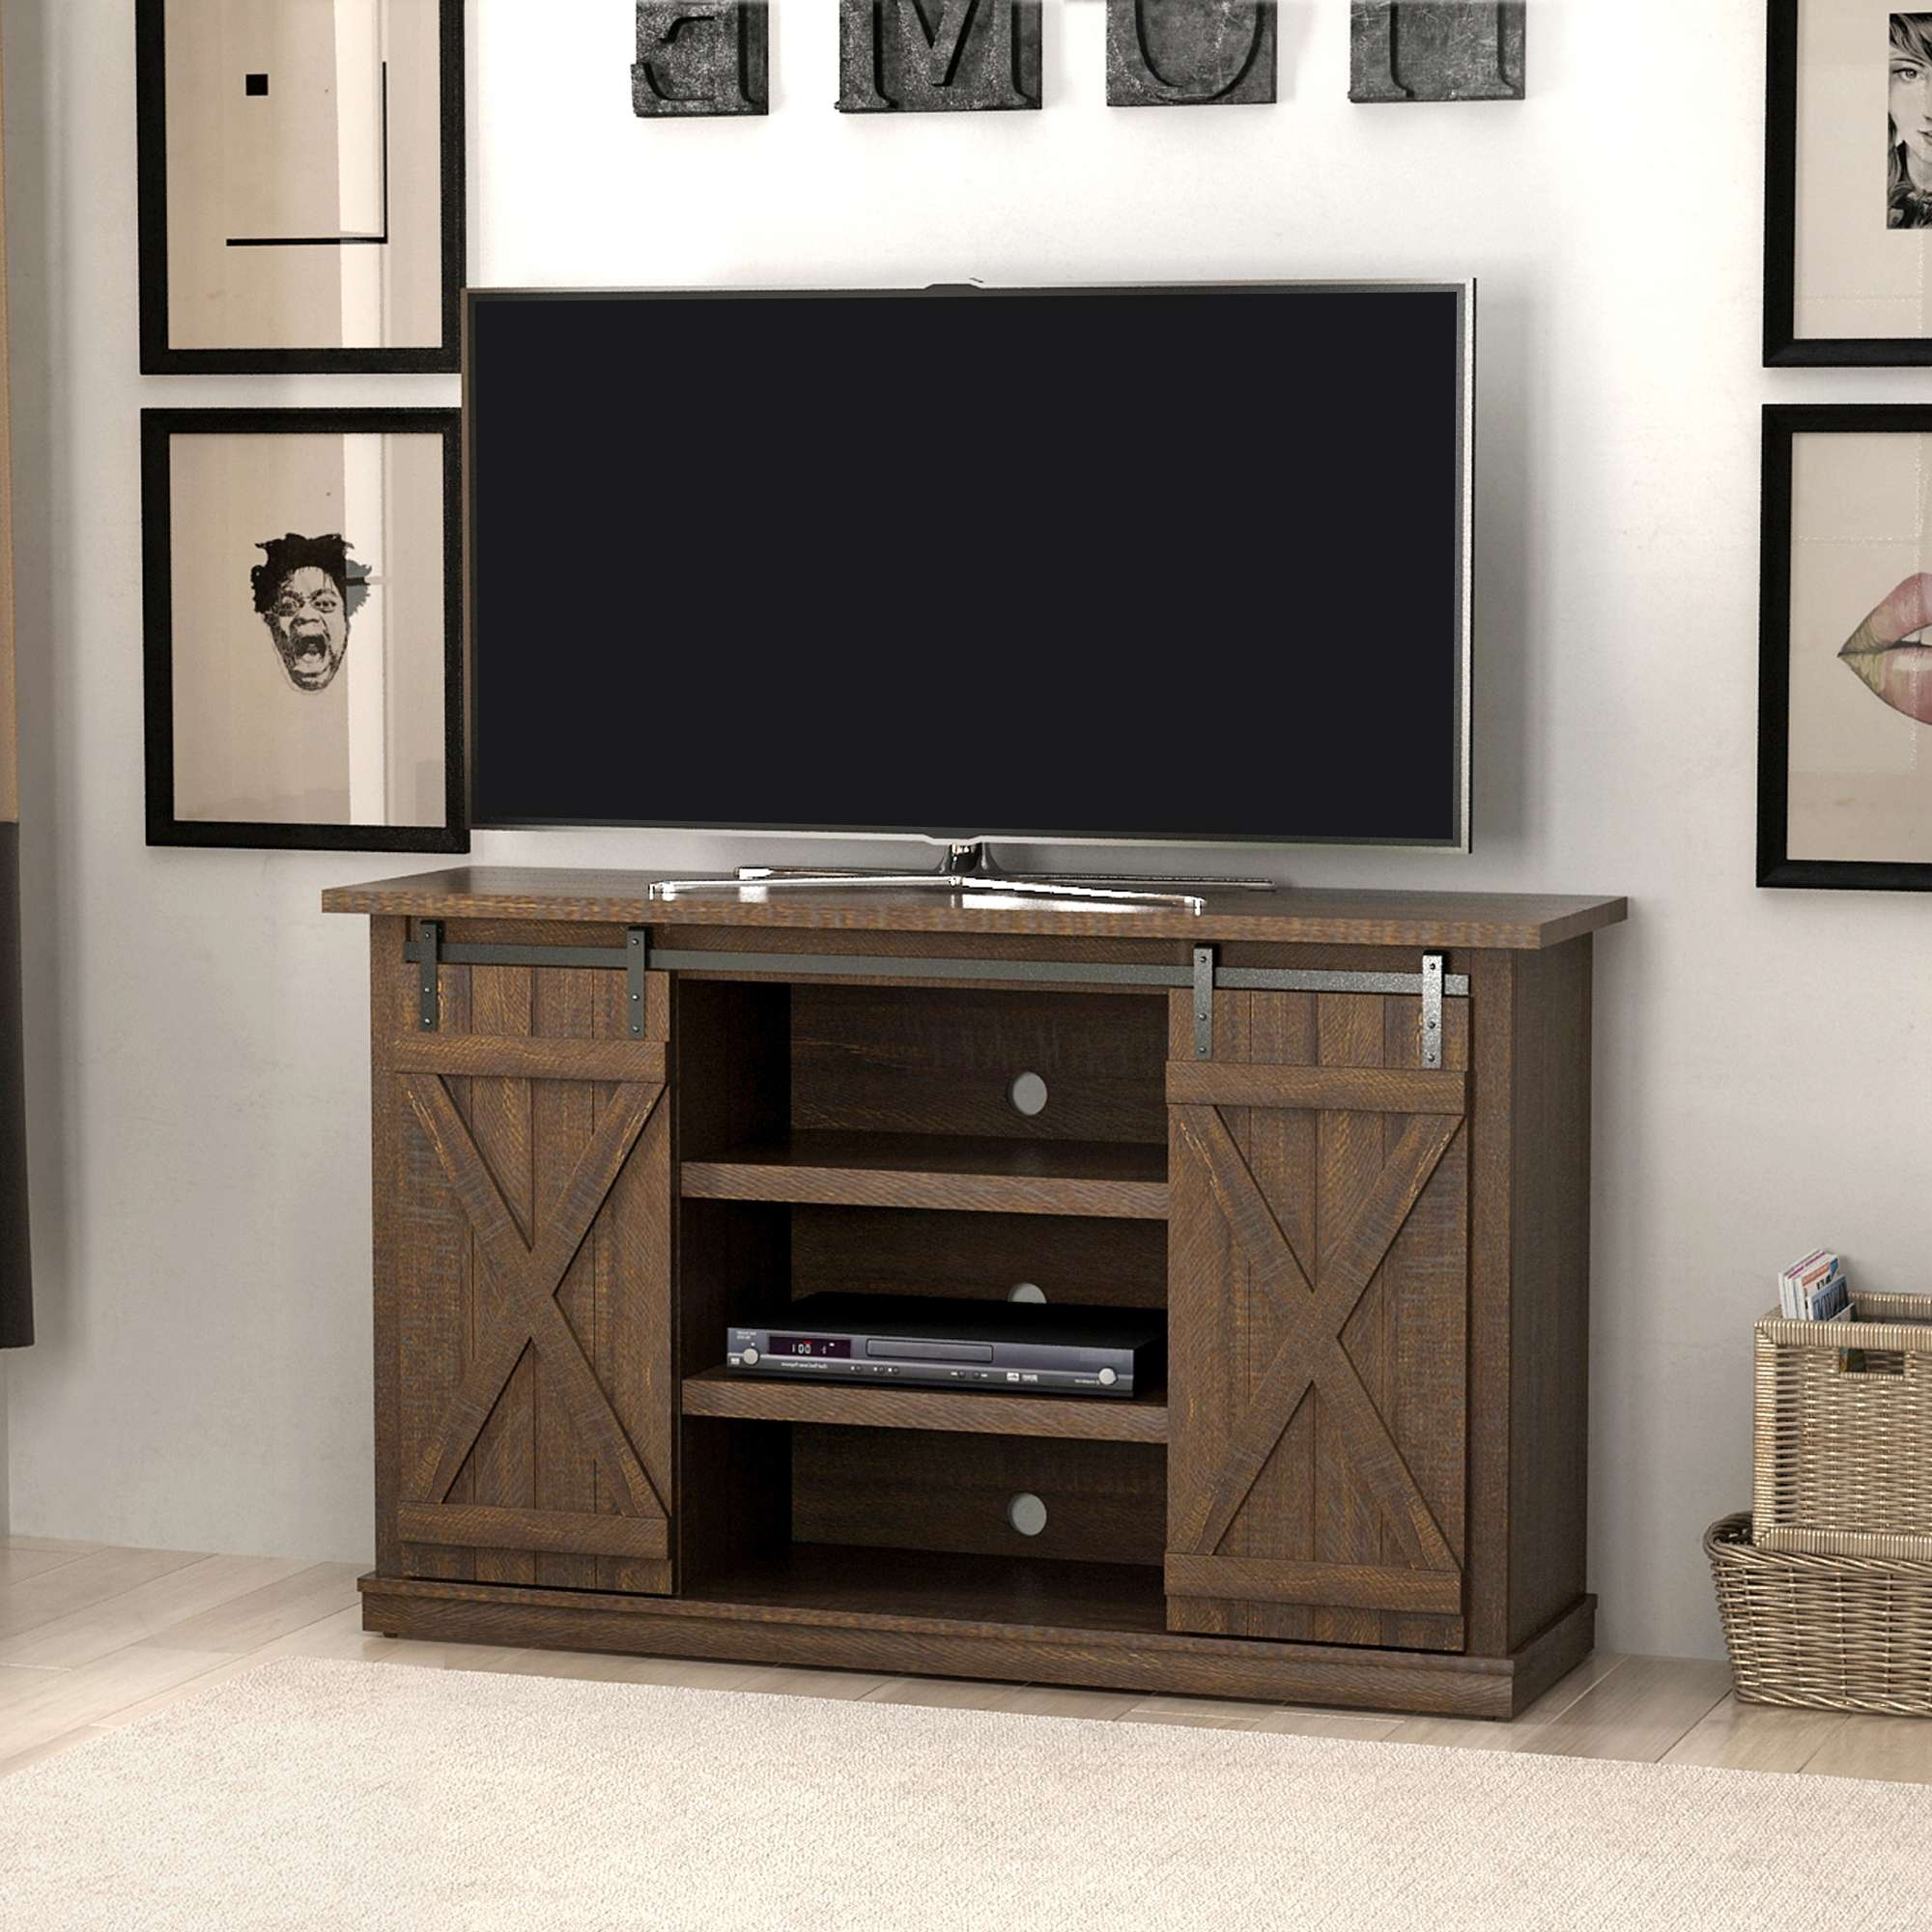 Tv Stands – Walmart For 24 Inch Tv Stands (View 11 of 15)